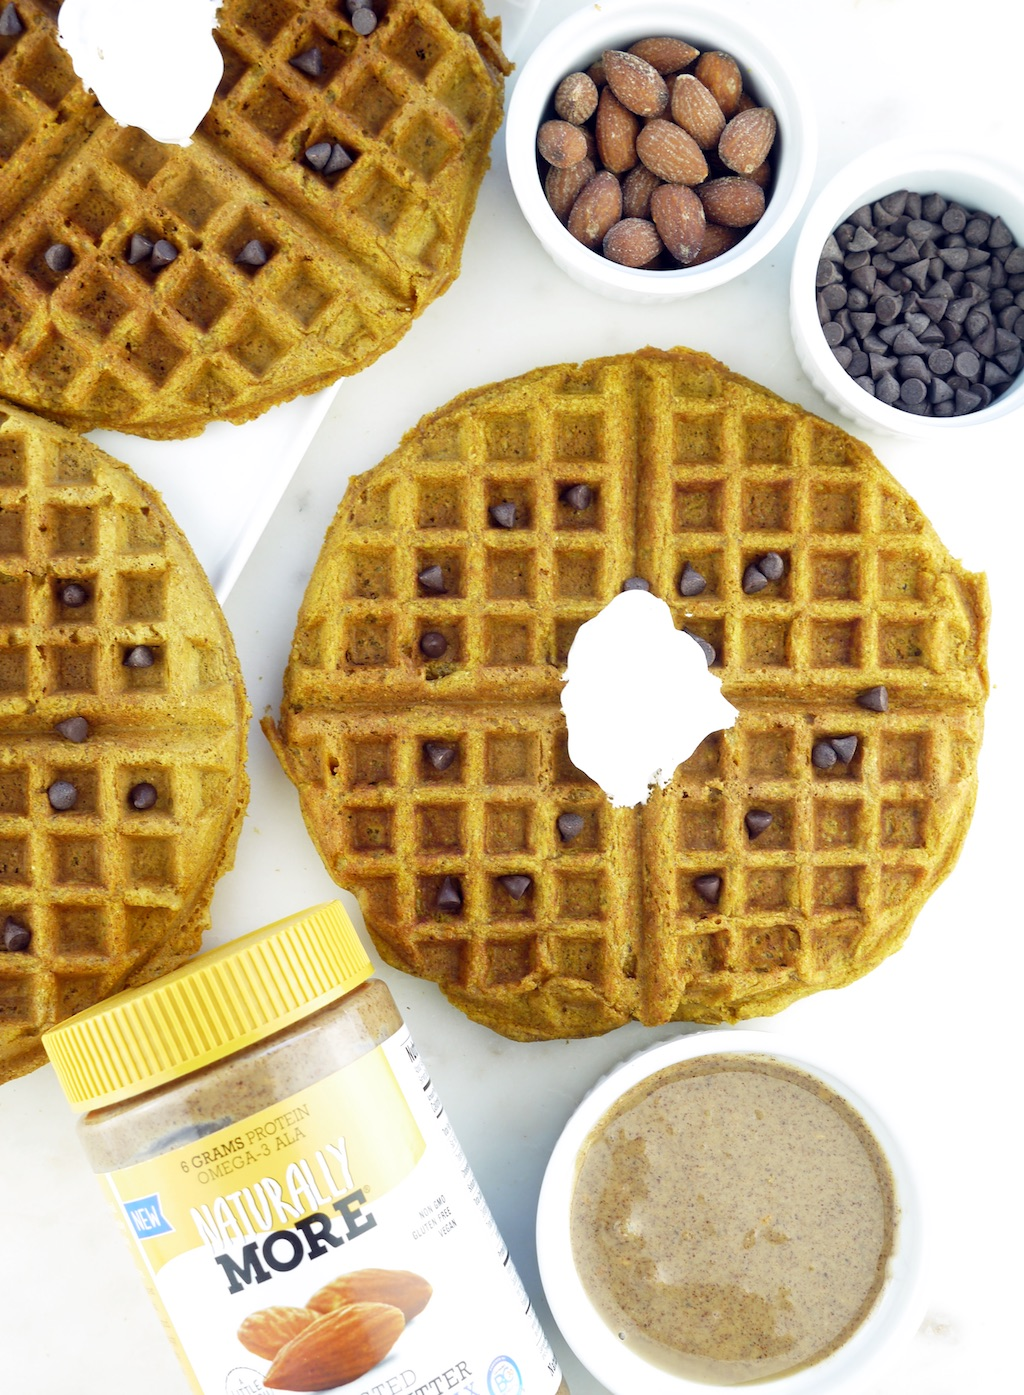 Pumpkin Almond Butter Waffles Naturally More's Roasted Almond Butter made with probiotics and flaxseeds